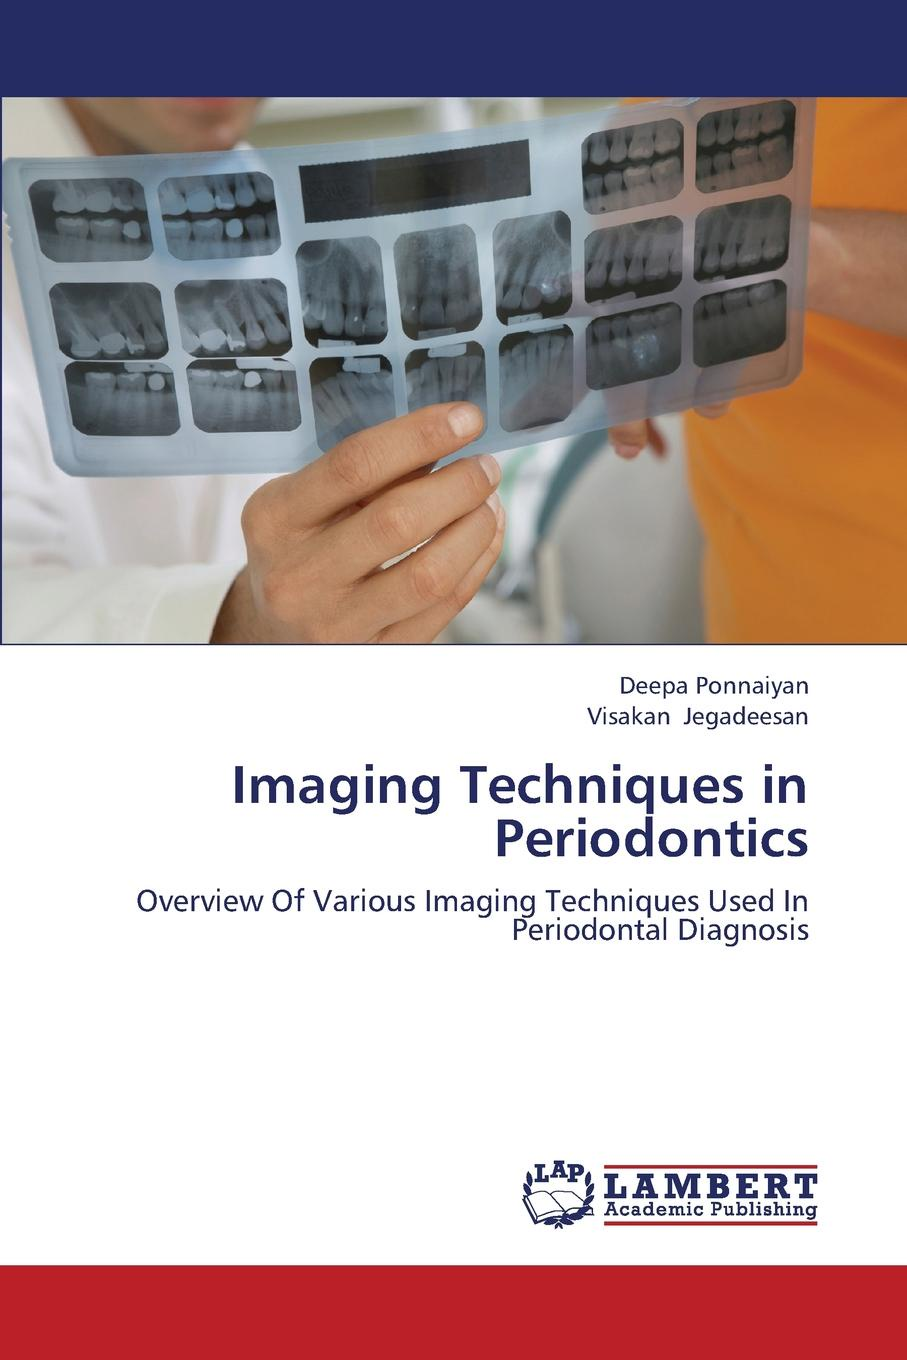 Ponnaiyan Deepa, Jegadeesan Visakan Imaging Techniques in Periodontics the endodontic periodontal interrelationships